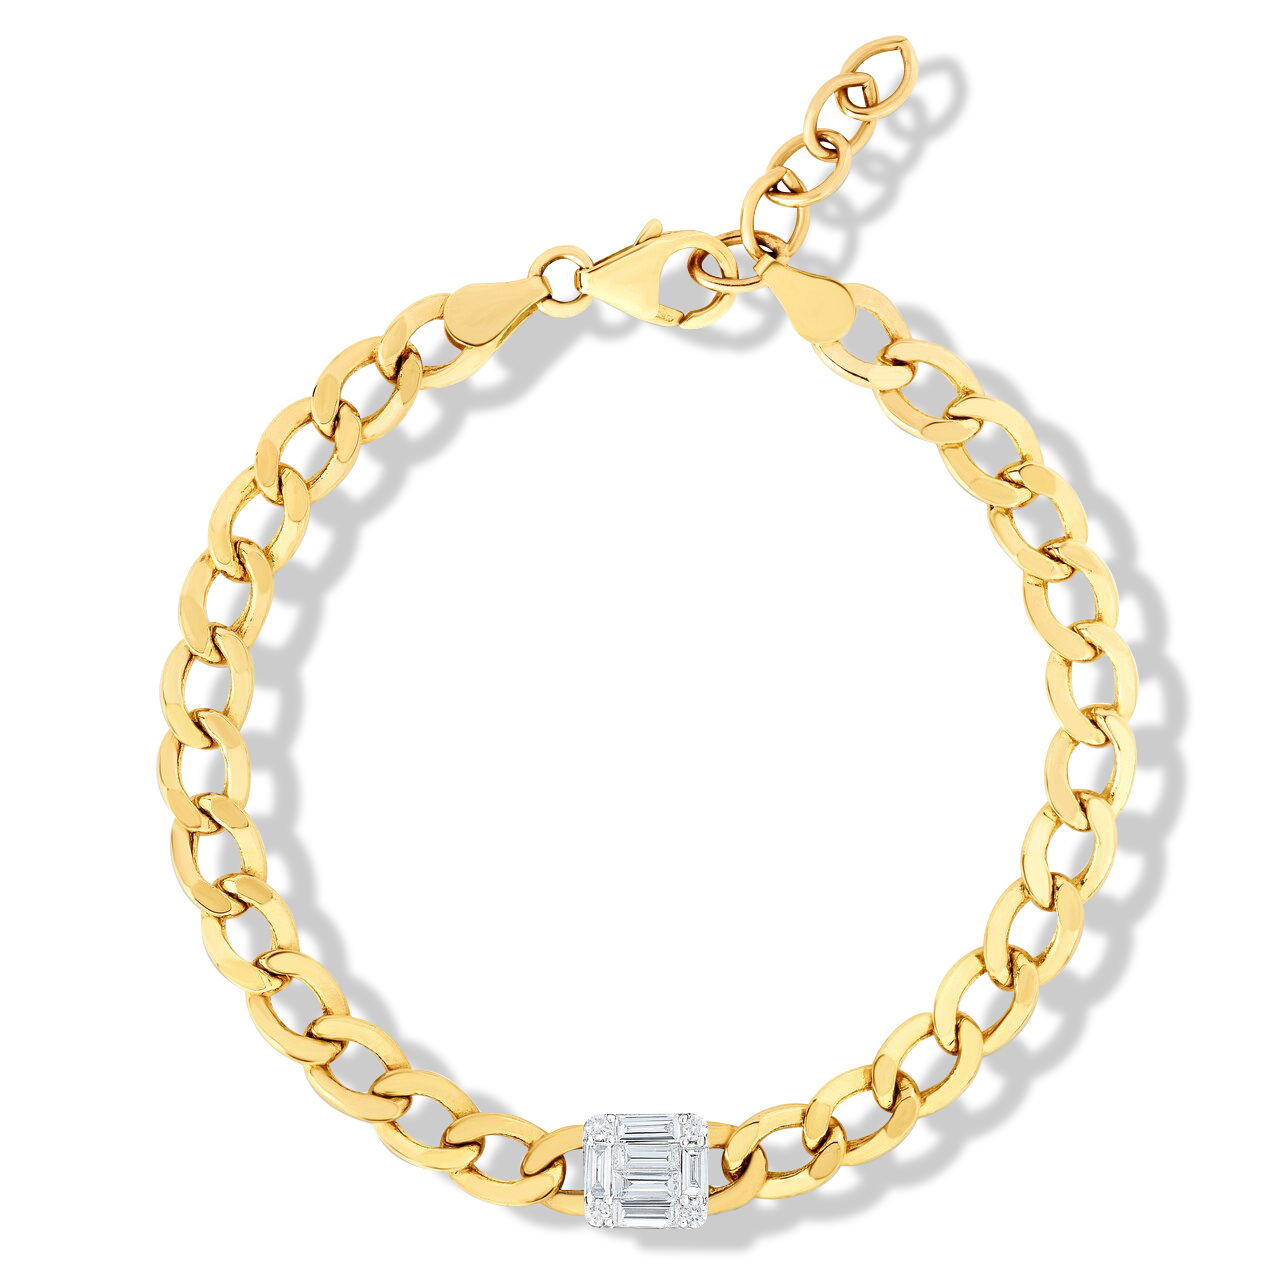 Go Bold! The TriBeca Collection Combines Oversized Gold Chain Jewelry With Sparkling Diamonds